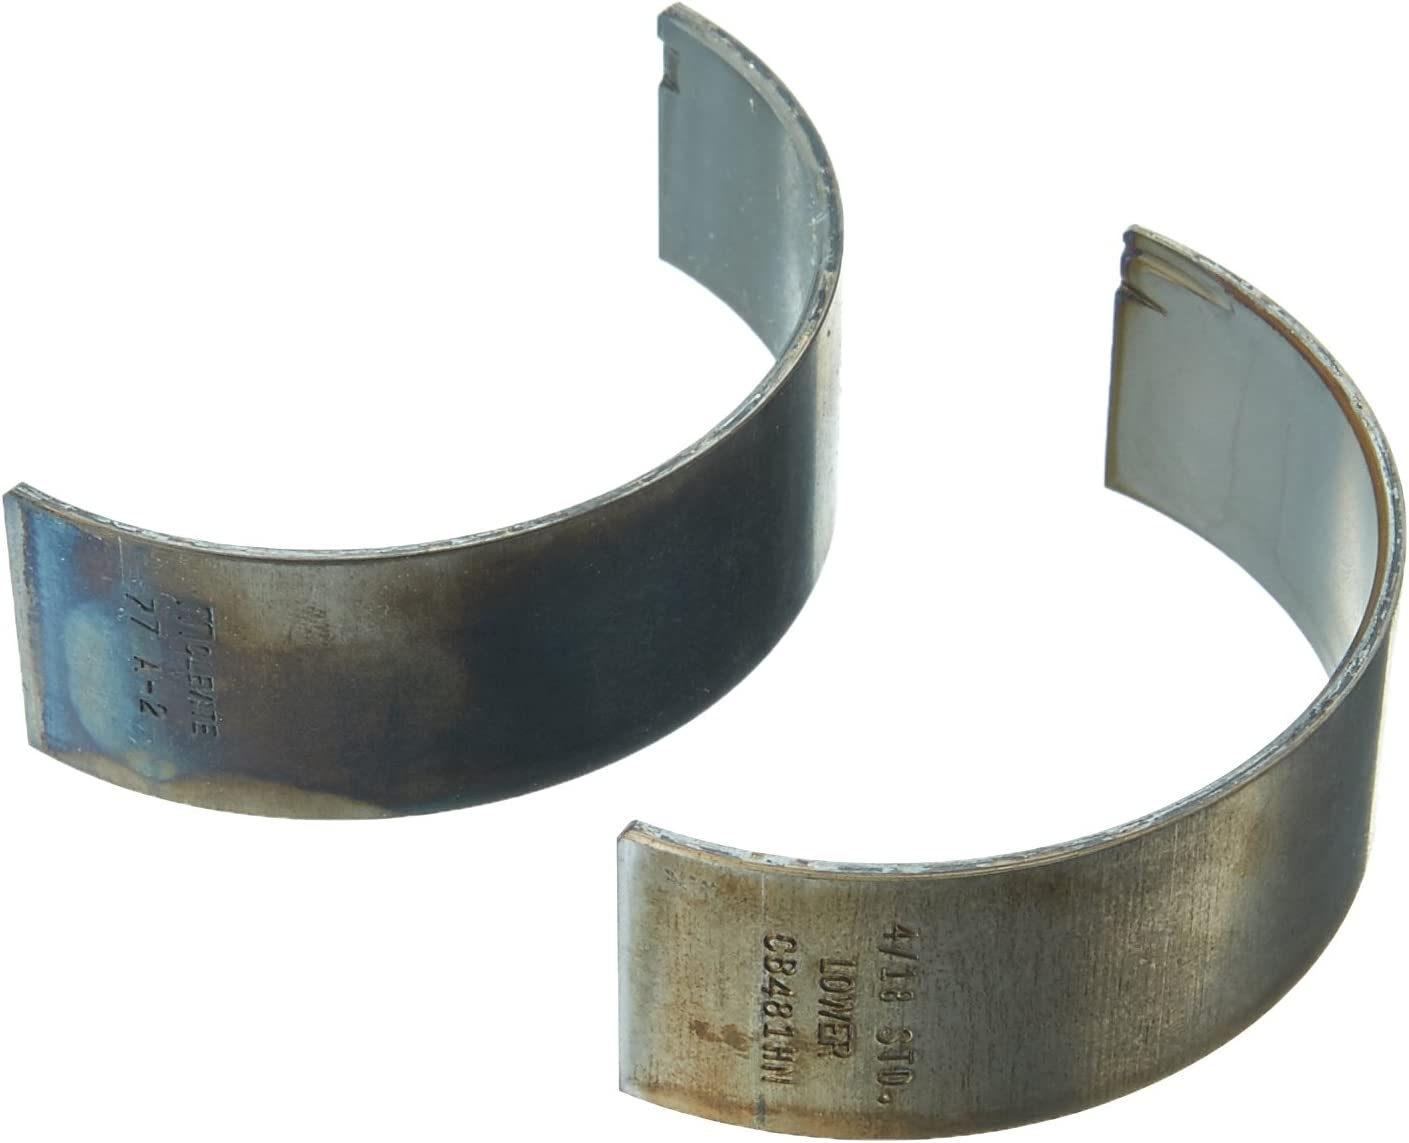 .010 Under Sizes 1966-1995 BBC Chevy 396 427 454 Clevite 77 CB743A MS829A Main Bearing Rod Bearings Set